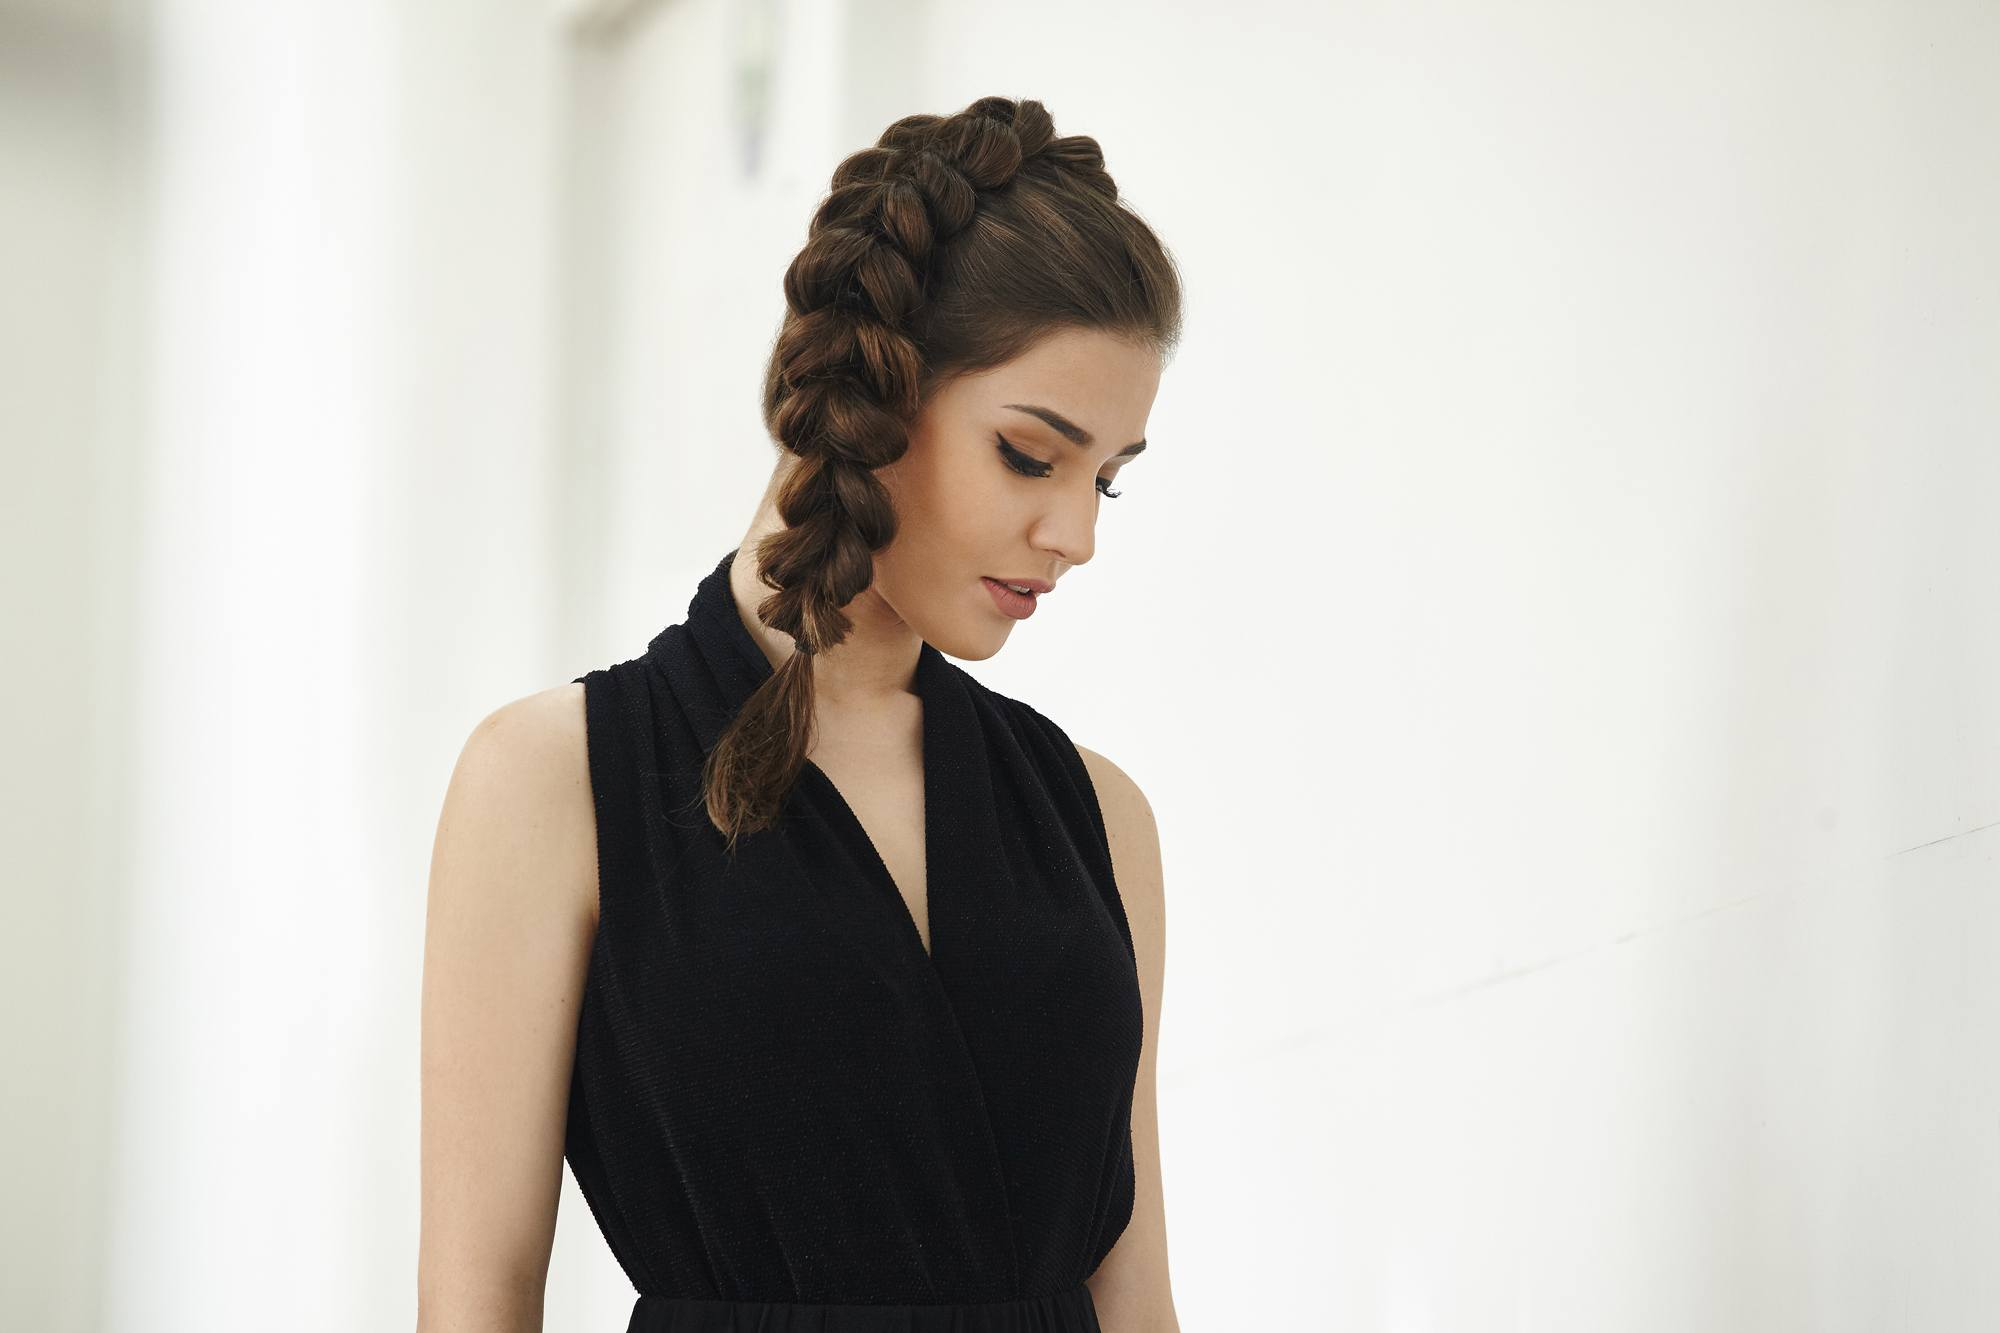 brunette model with a thick side braided ponytail wearing a black v neck dress